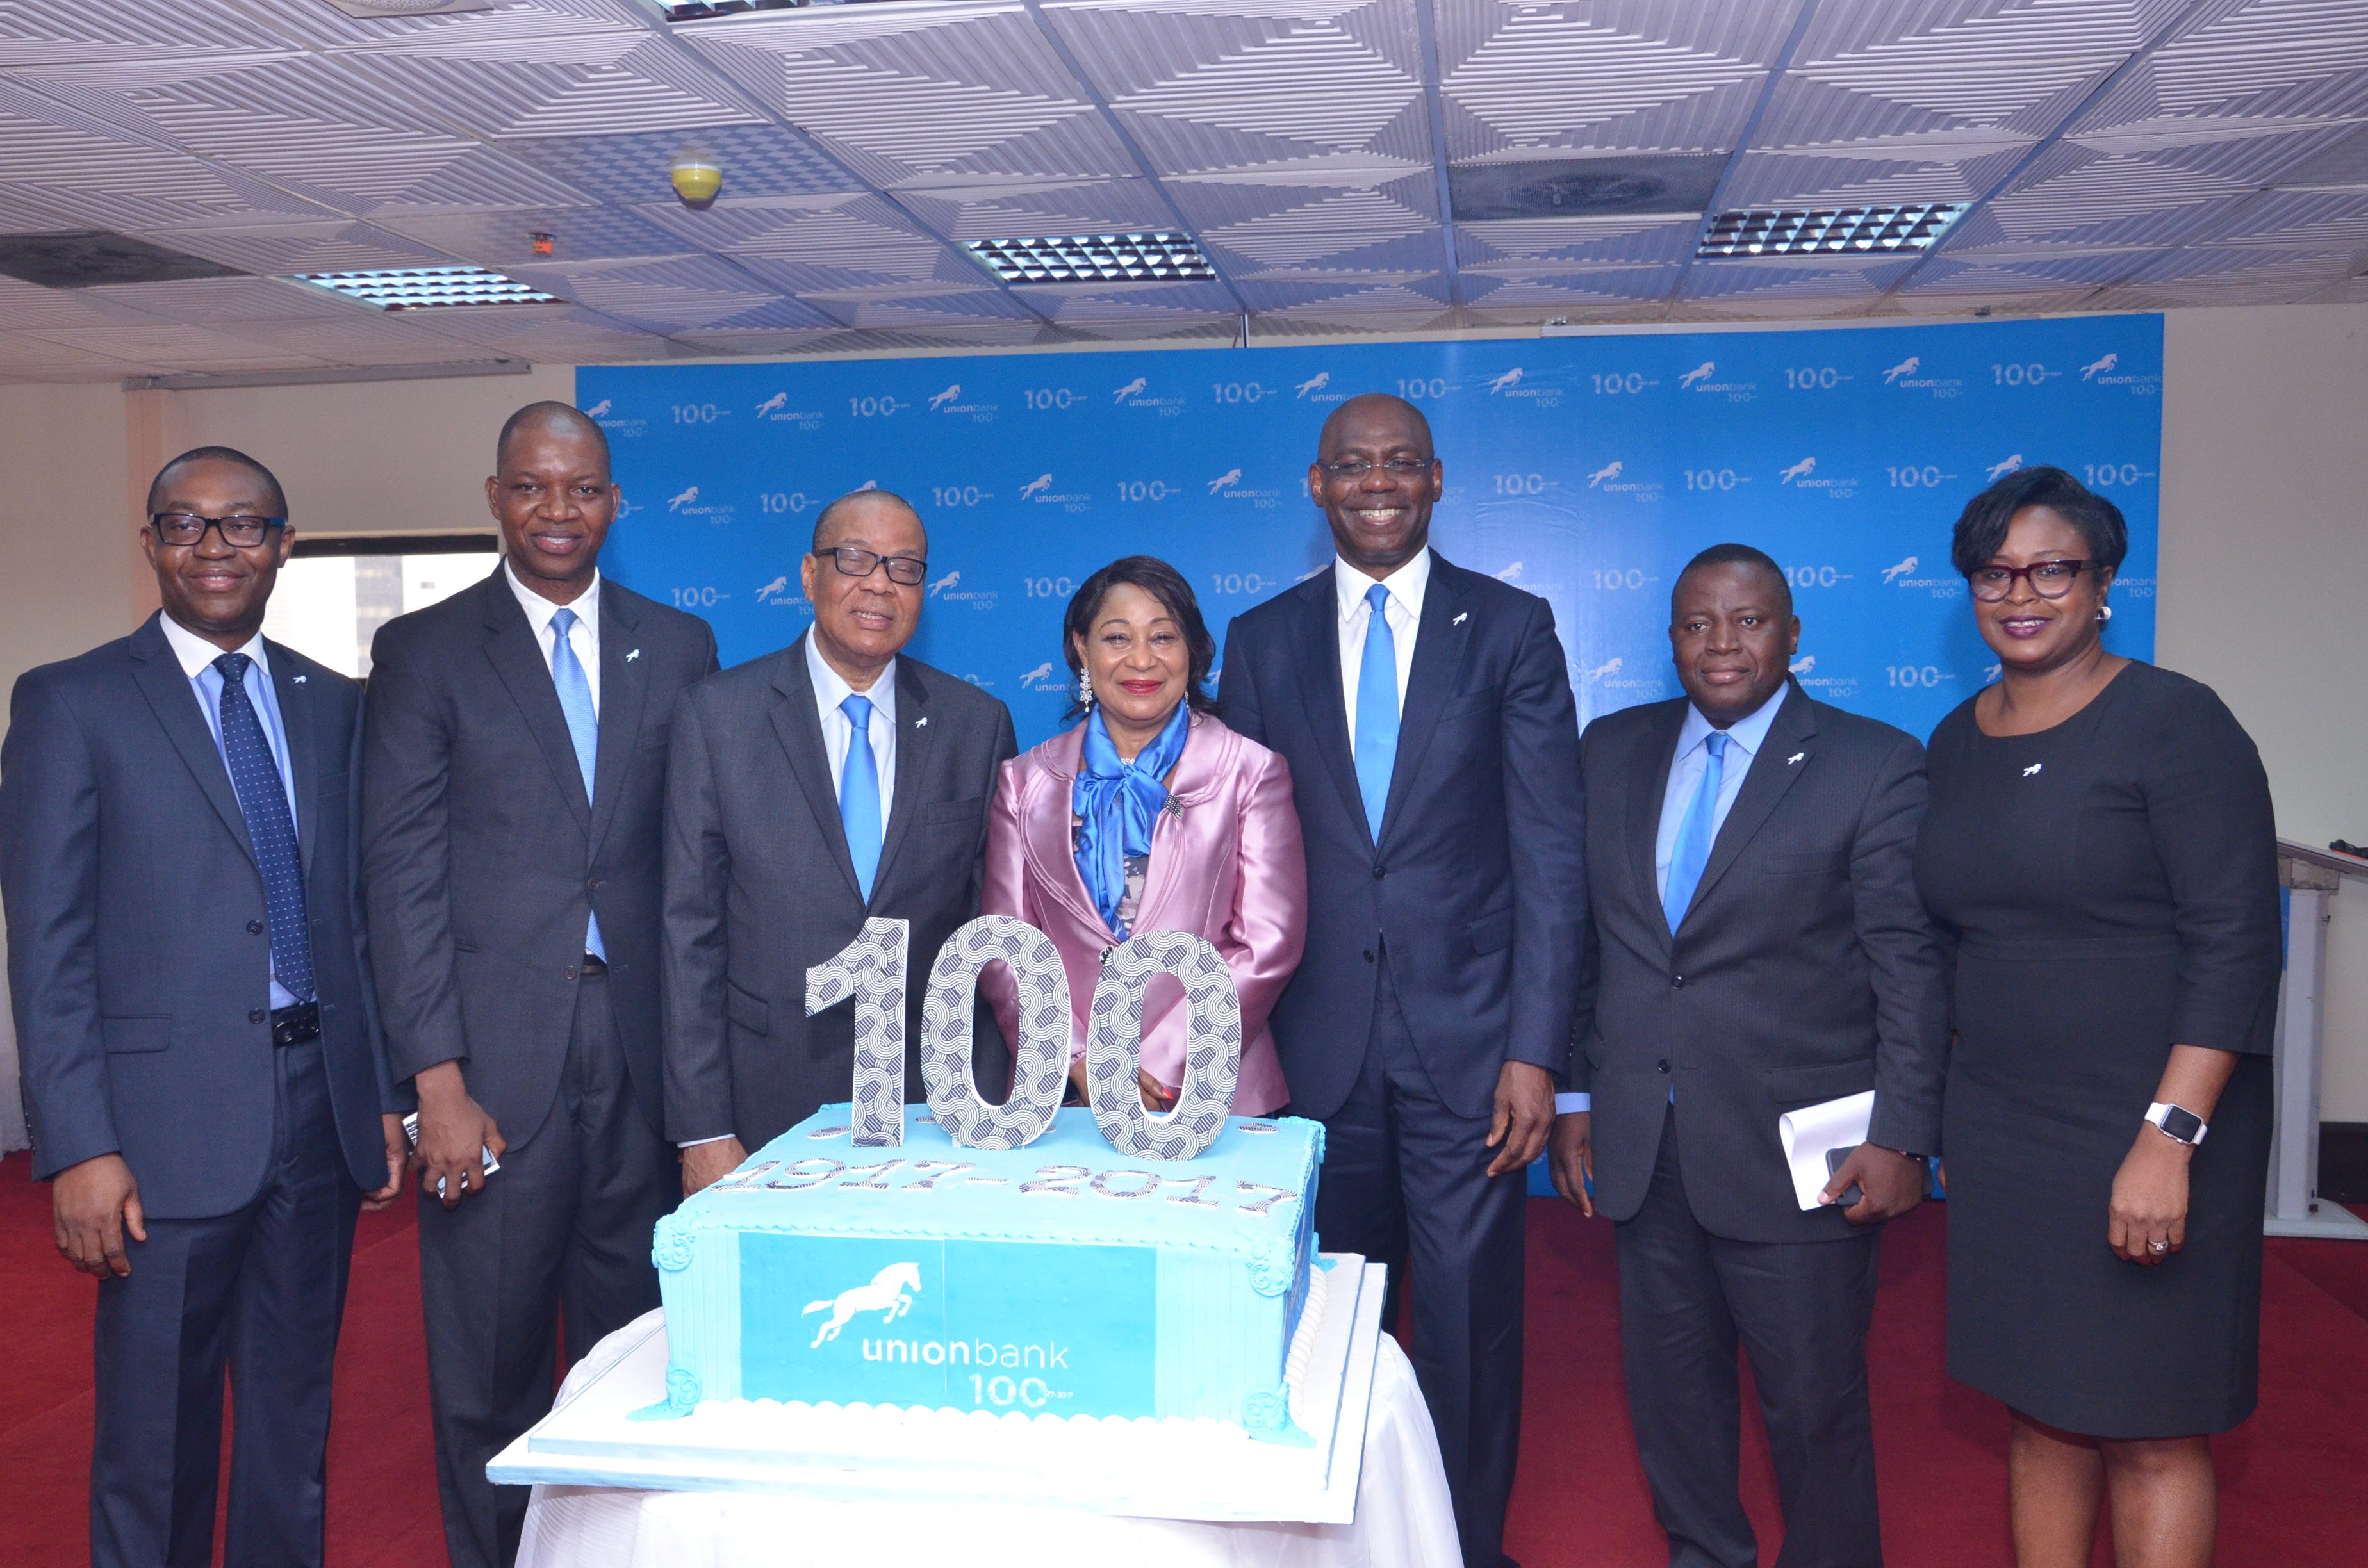 Union Bank Executives kicking-off the 100-Year Anniversary